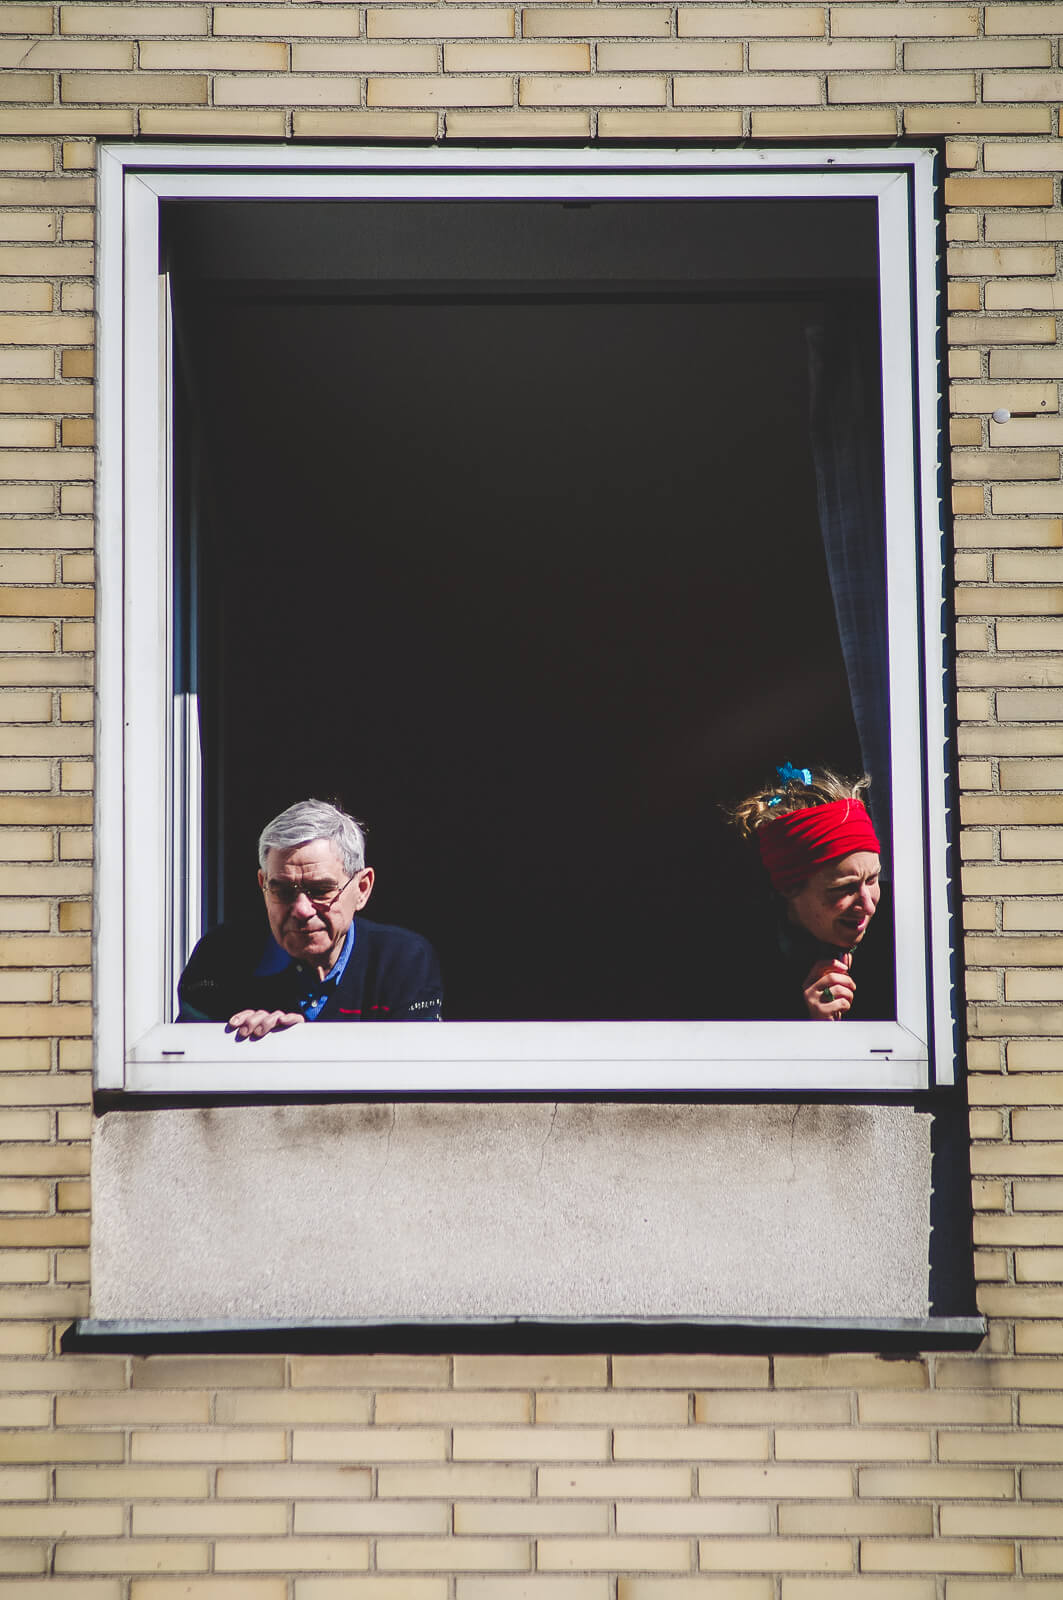 Two people leaning out of the window each on another side